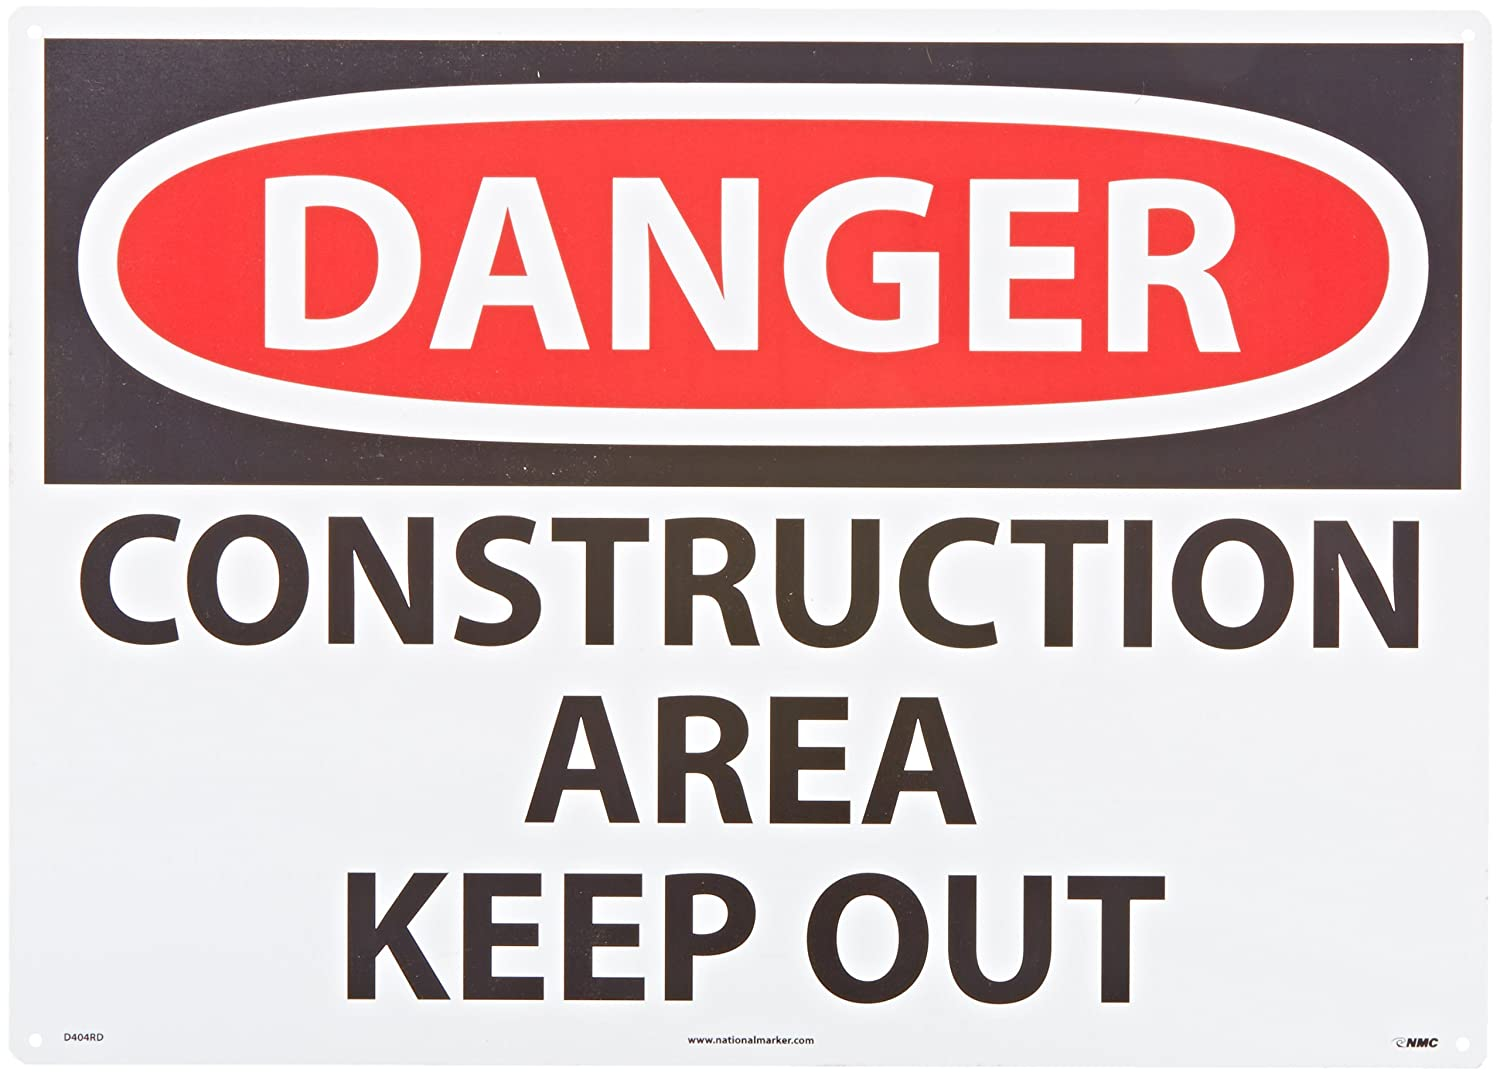 Rigid Plastic CONSTRUCTION AREA KEEP OUT Legend DANGER NMC D404RD OSHA Sign 28 Length x 20 Height Red//Black on White